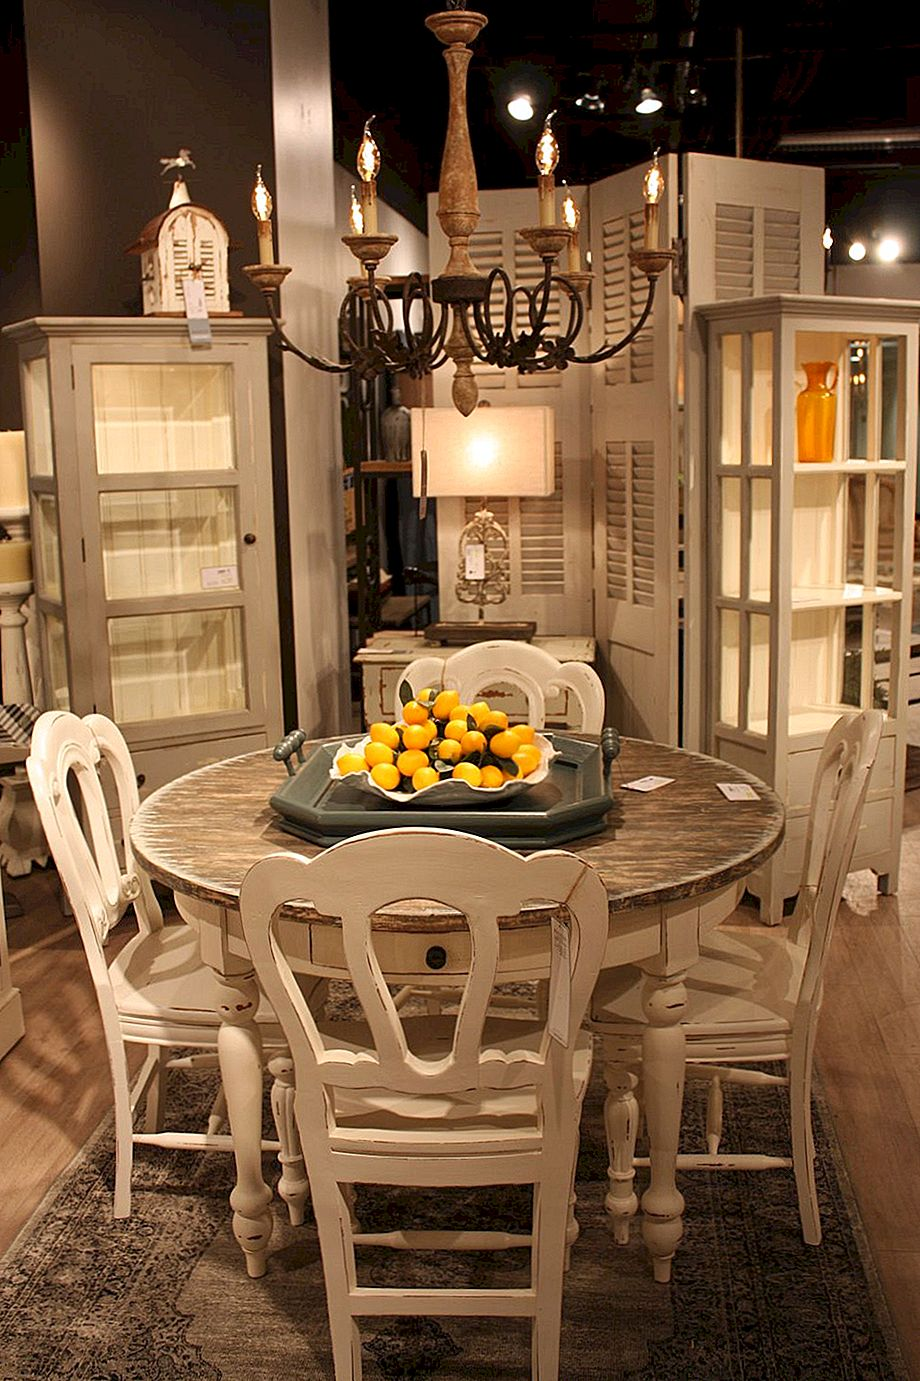 Secrets Behind Distressed Furniture och Shabby-Chic Decors